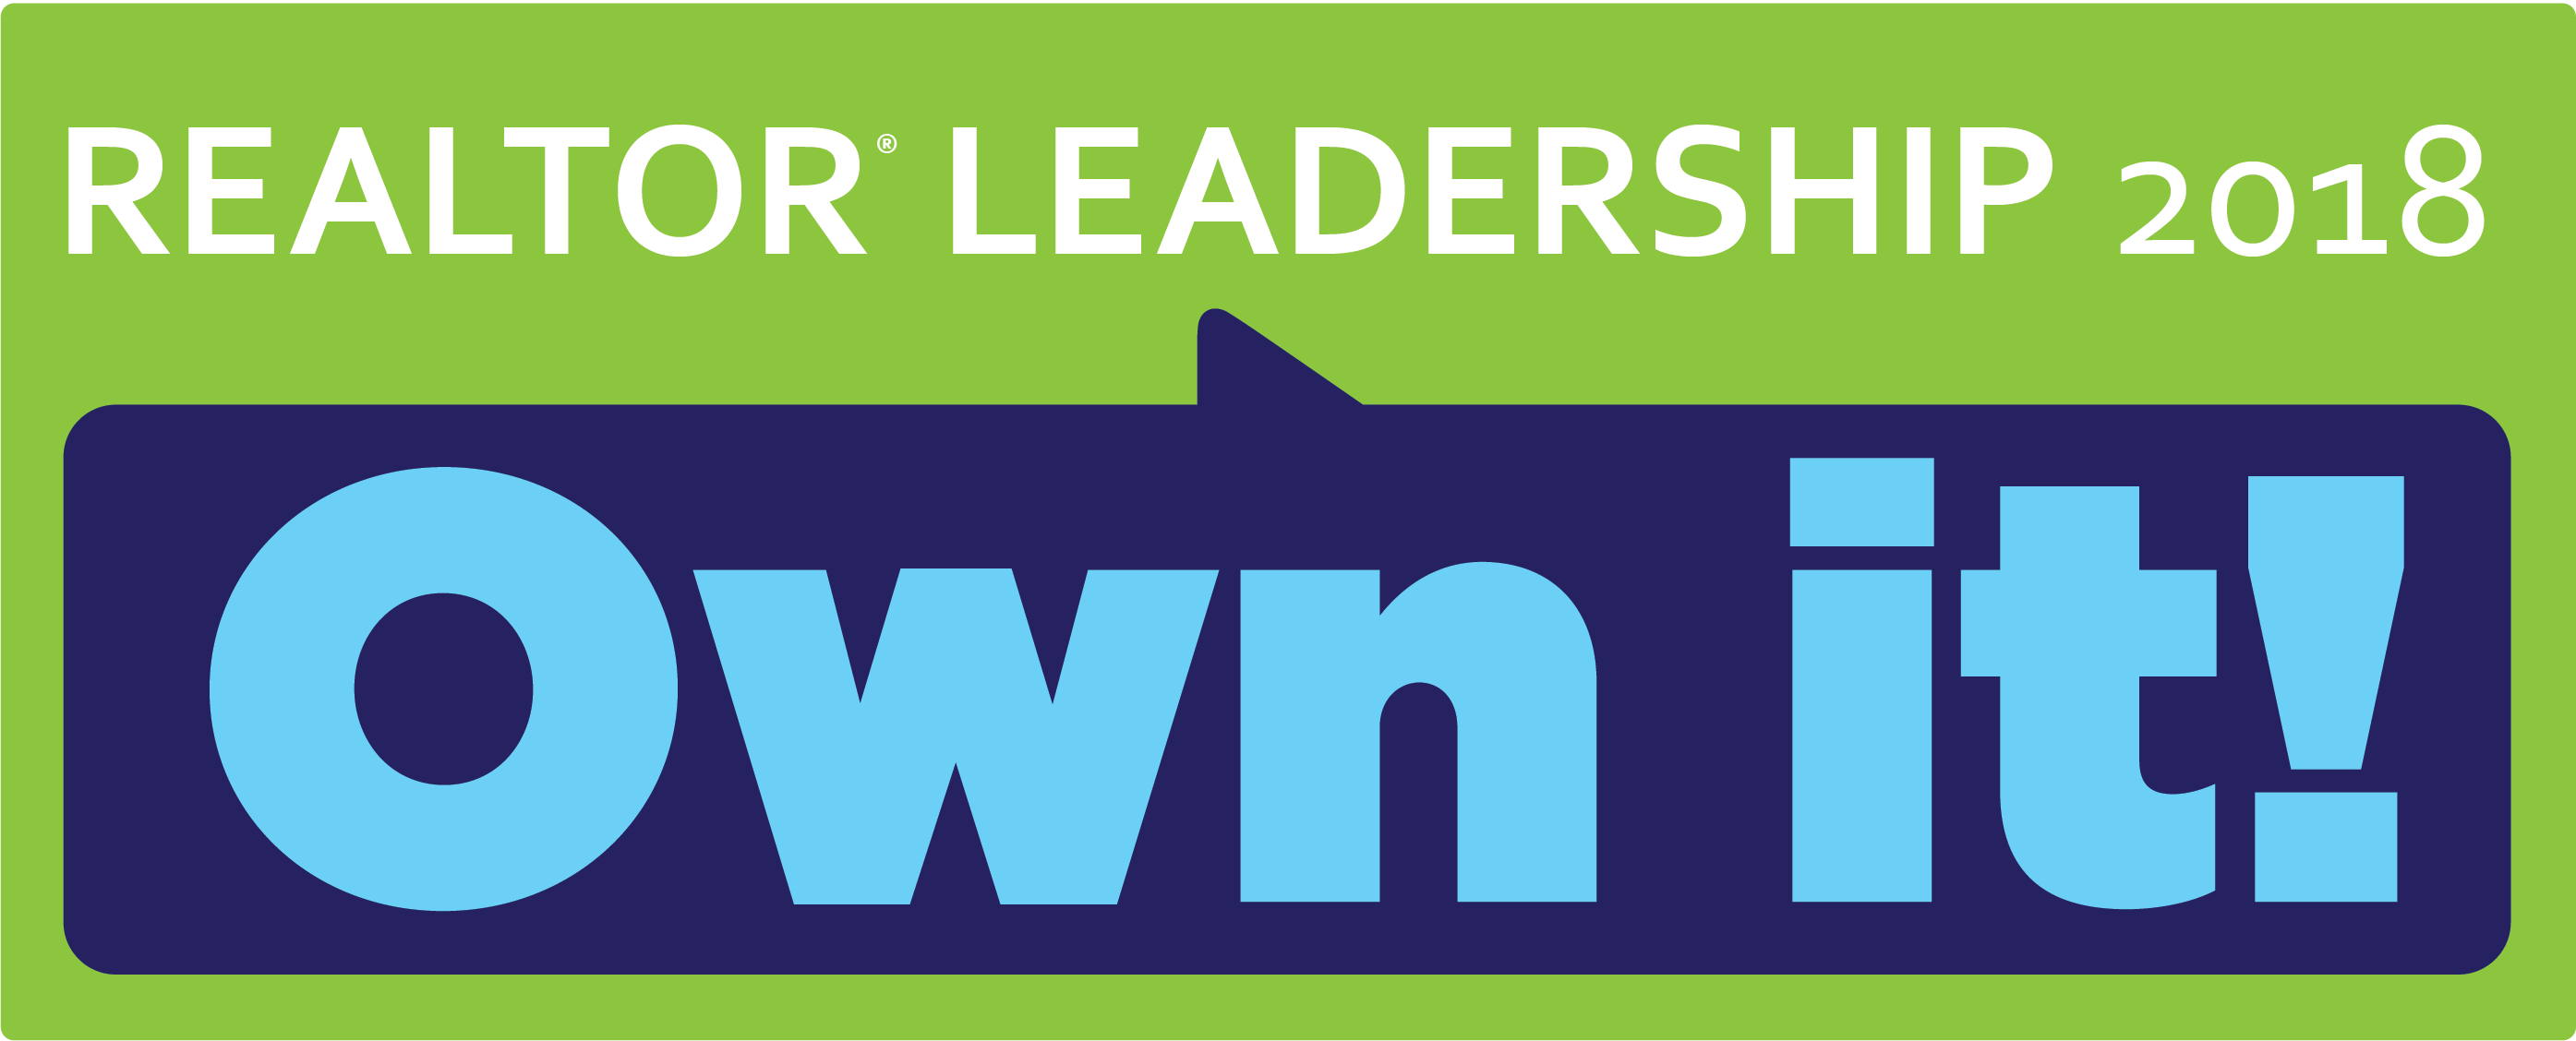 Logo: realtor leadership 2018 Own it